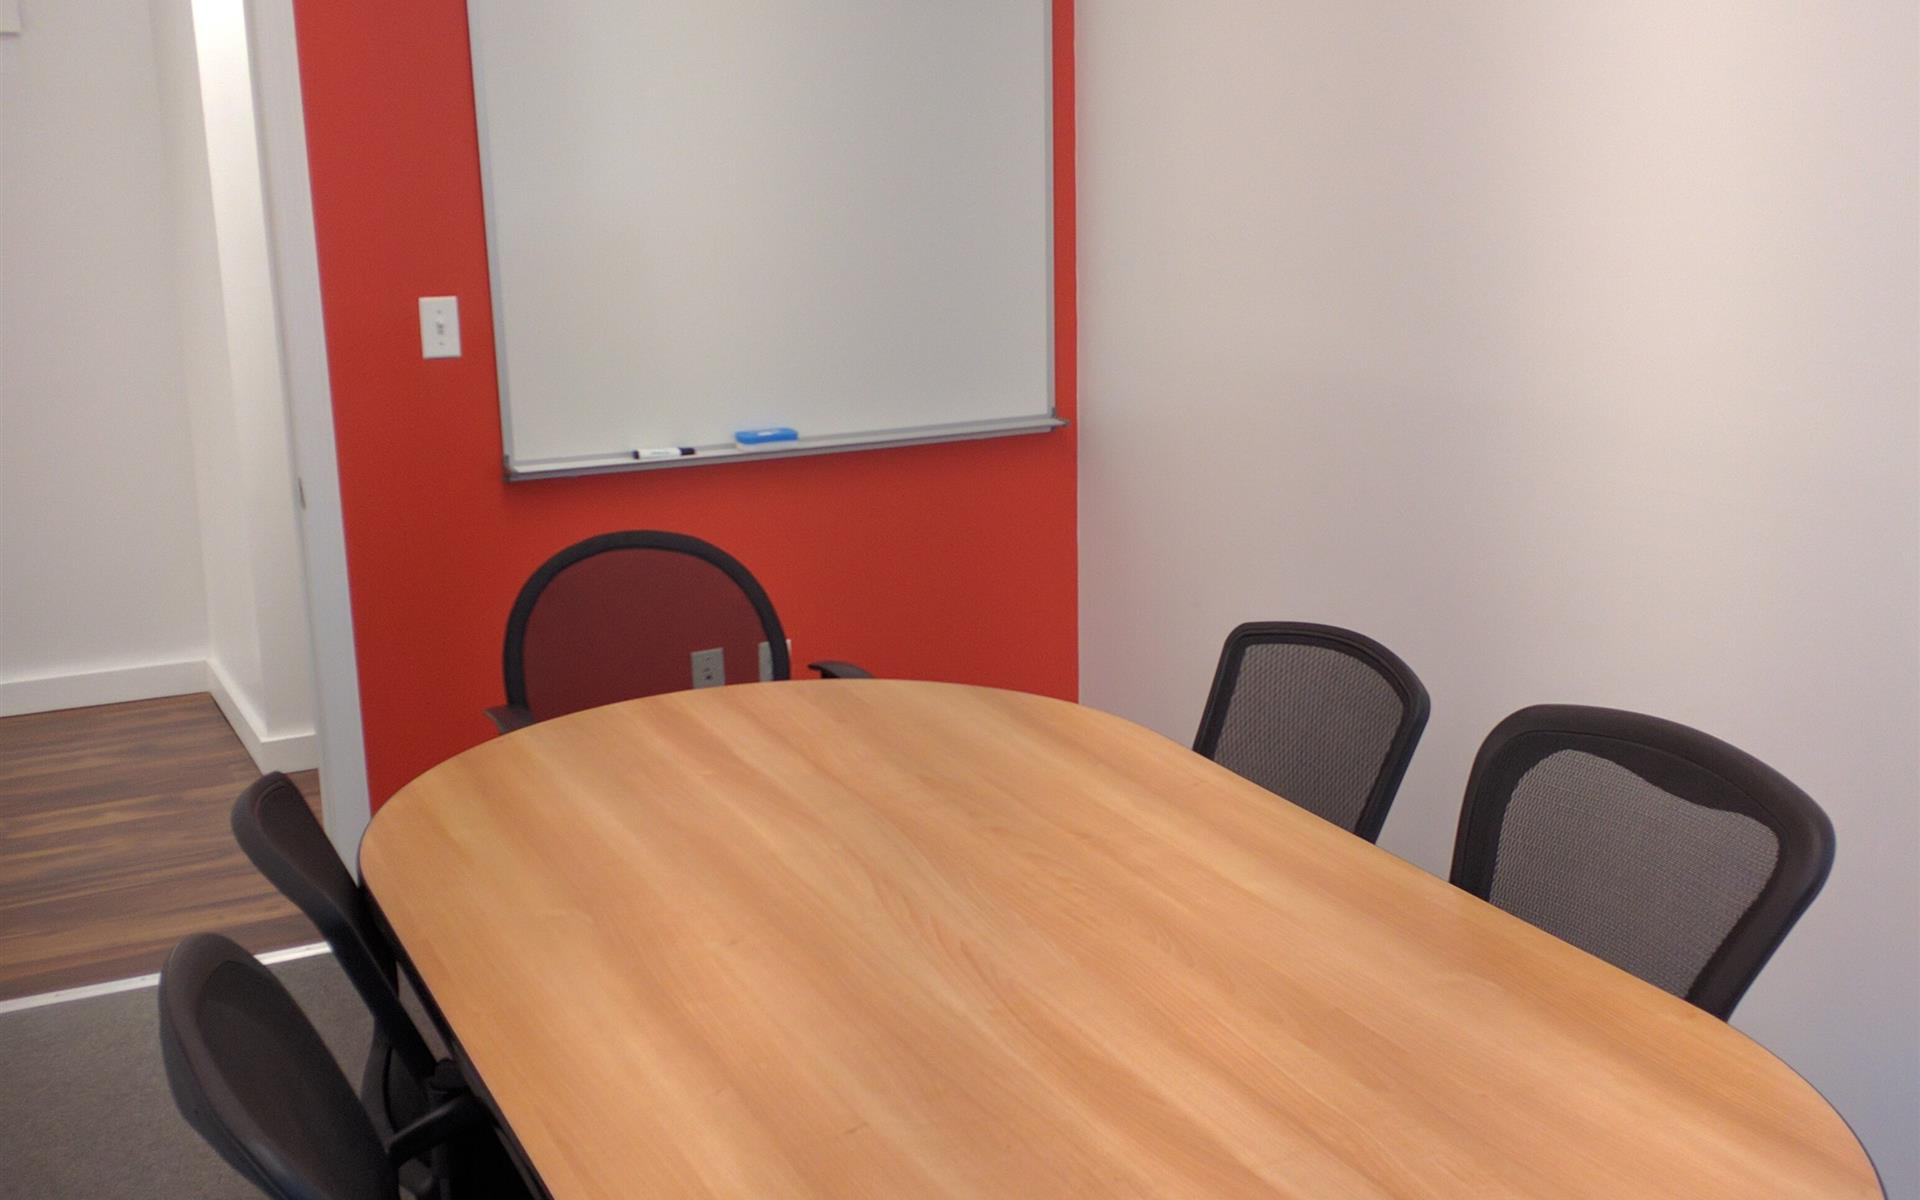 ABC Languages - Penn Station - Room 10 Medium Classroom or Meeting Room